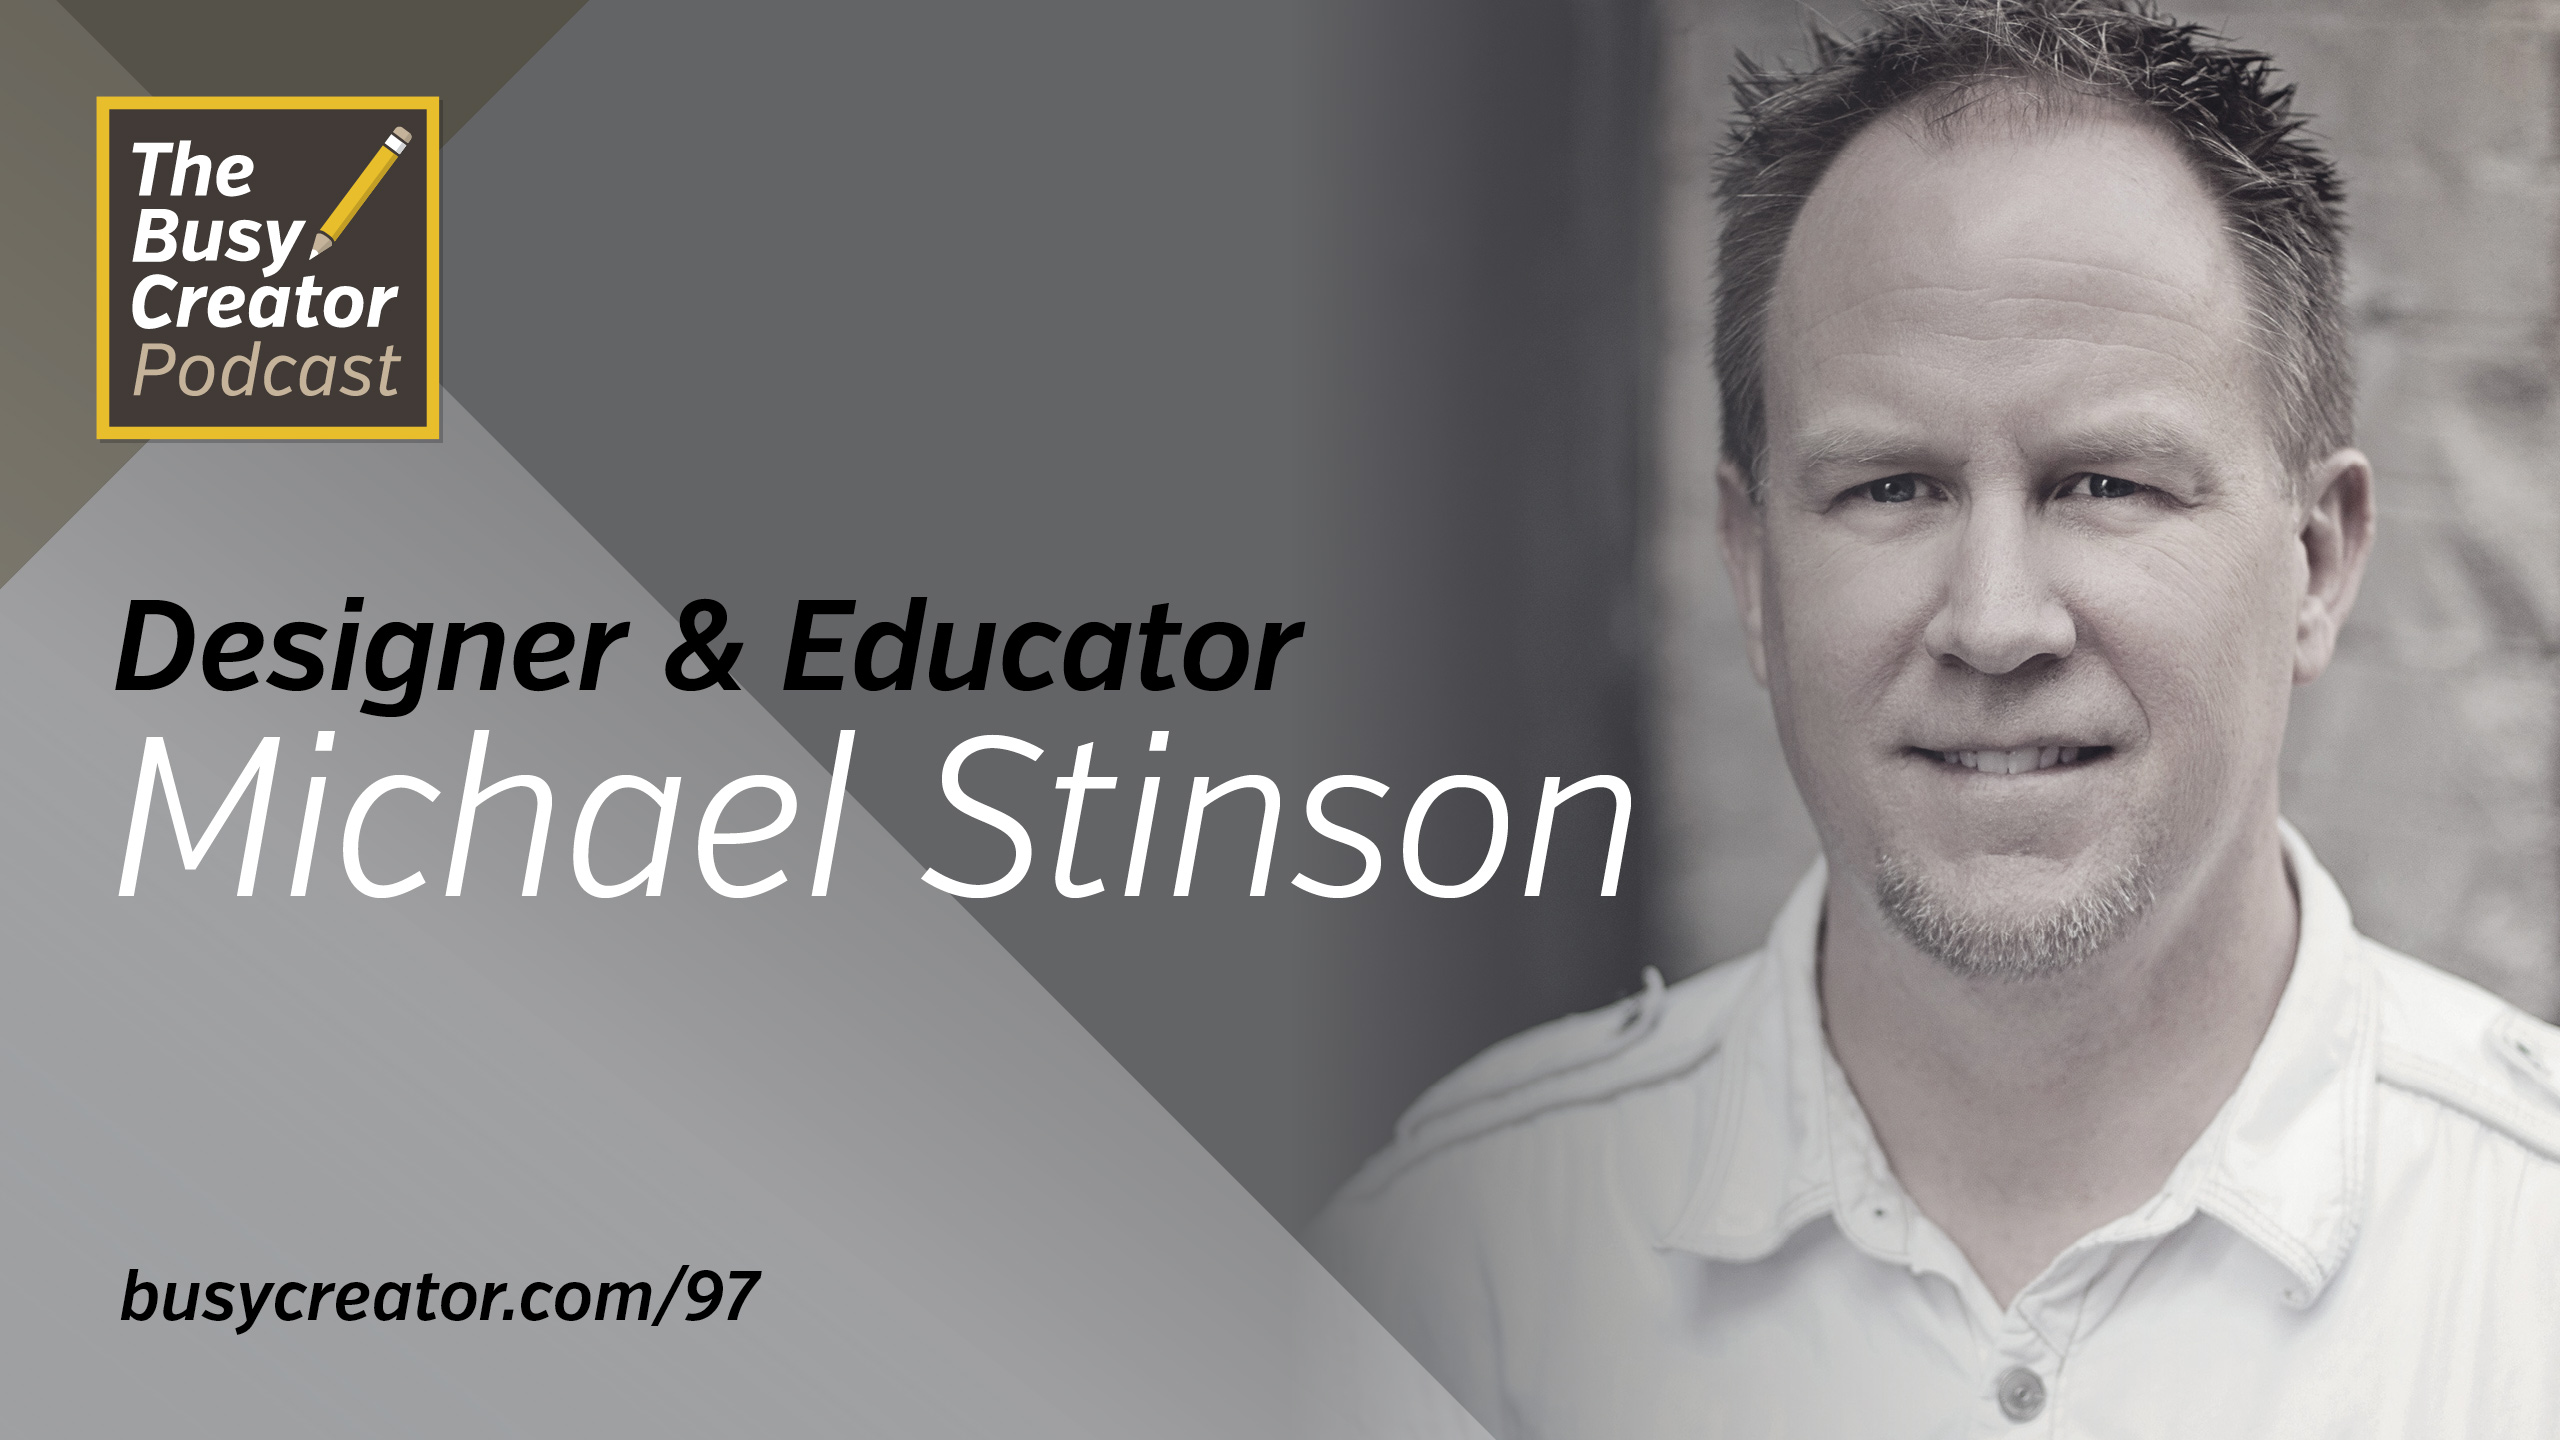 Practical Typographic Advice and Building an Education Business Alongside a Design Firm with Michael Stinson